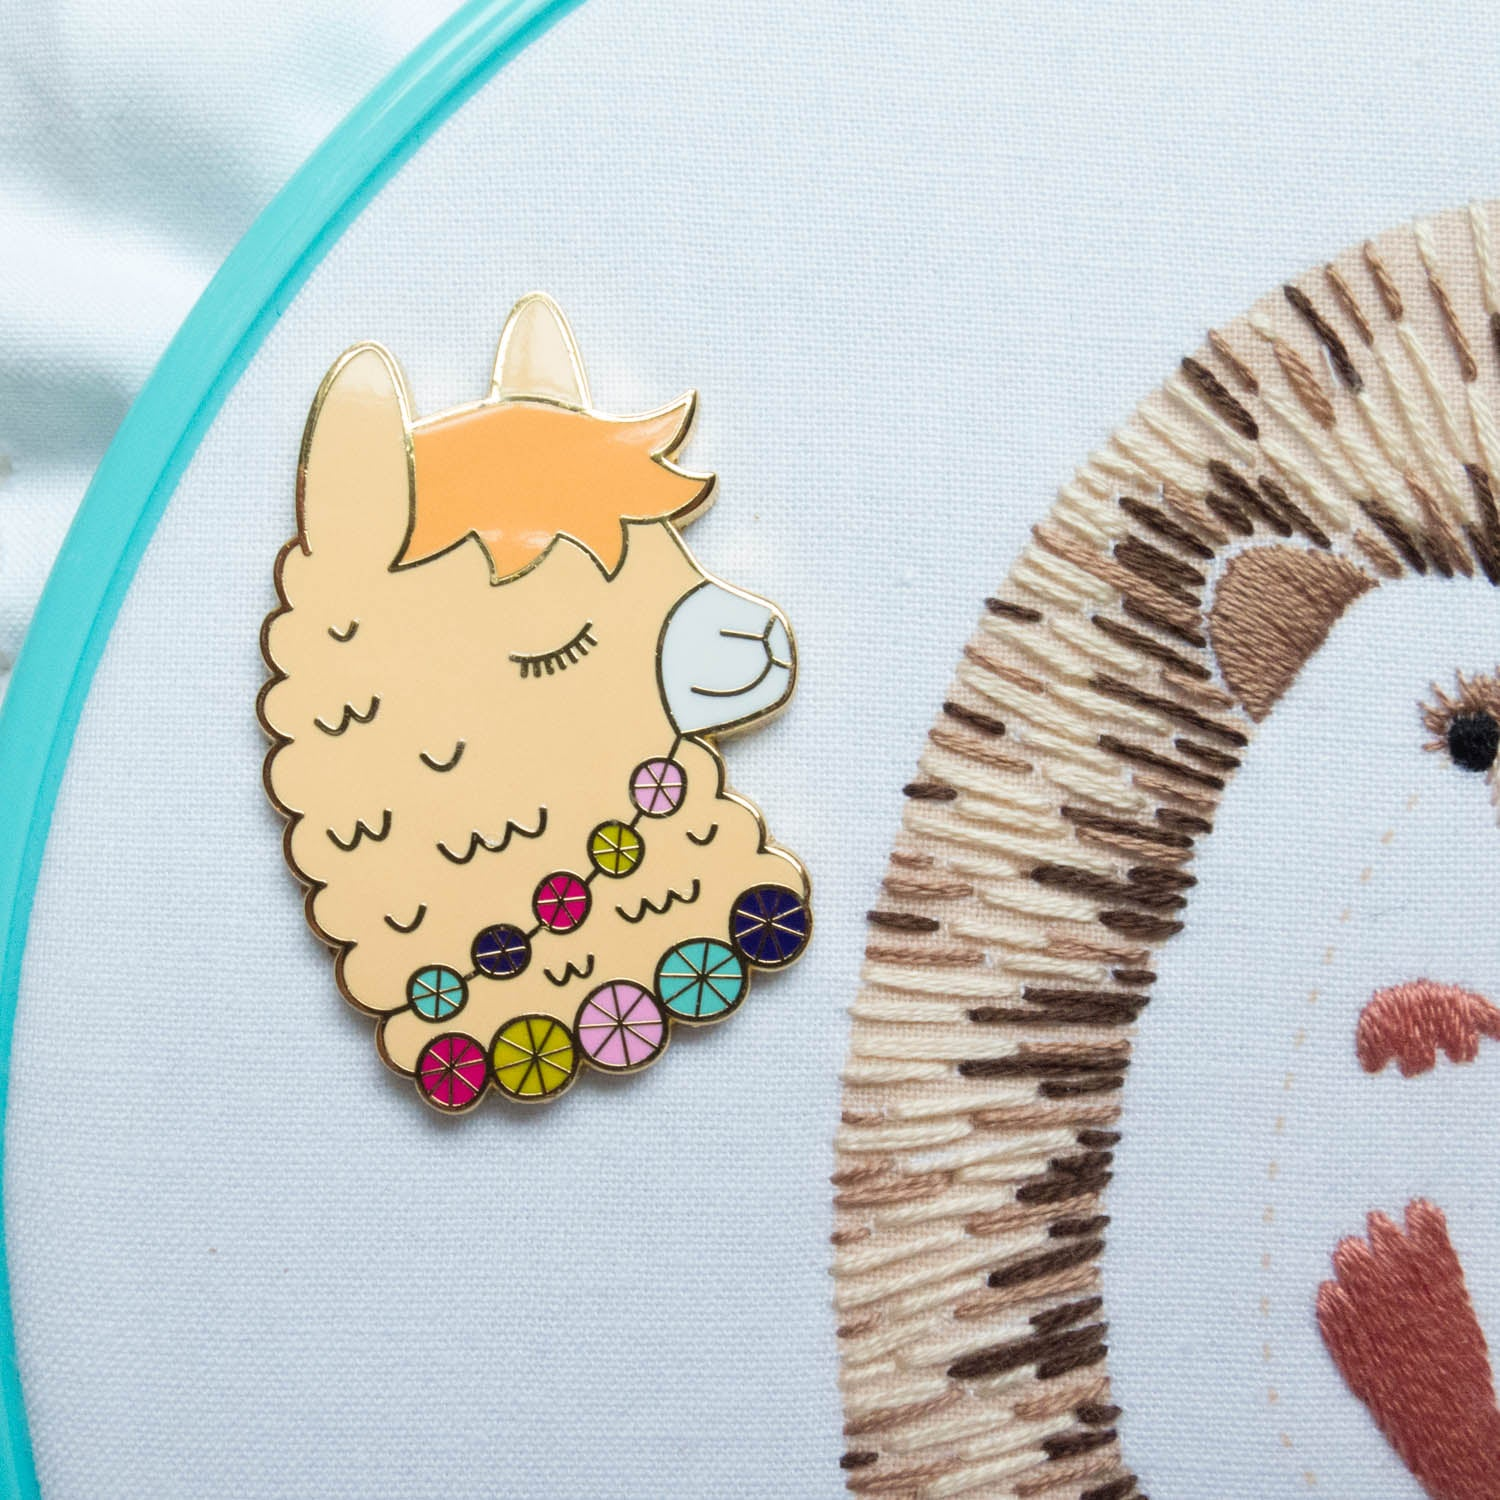 Cute Llama Needleminder Needle Minder - Snuggly Monkey